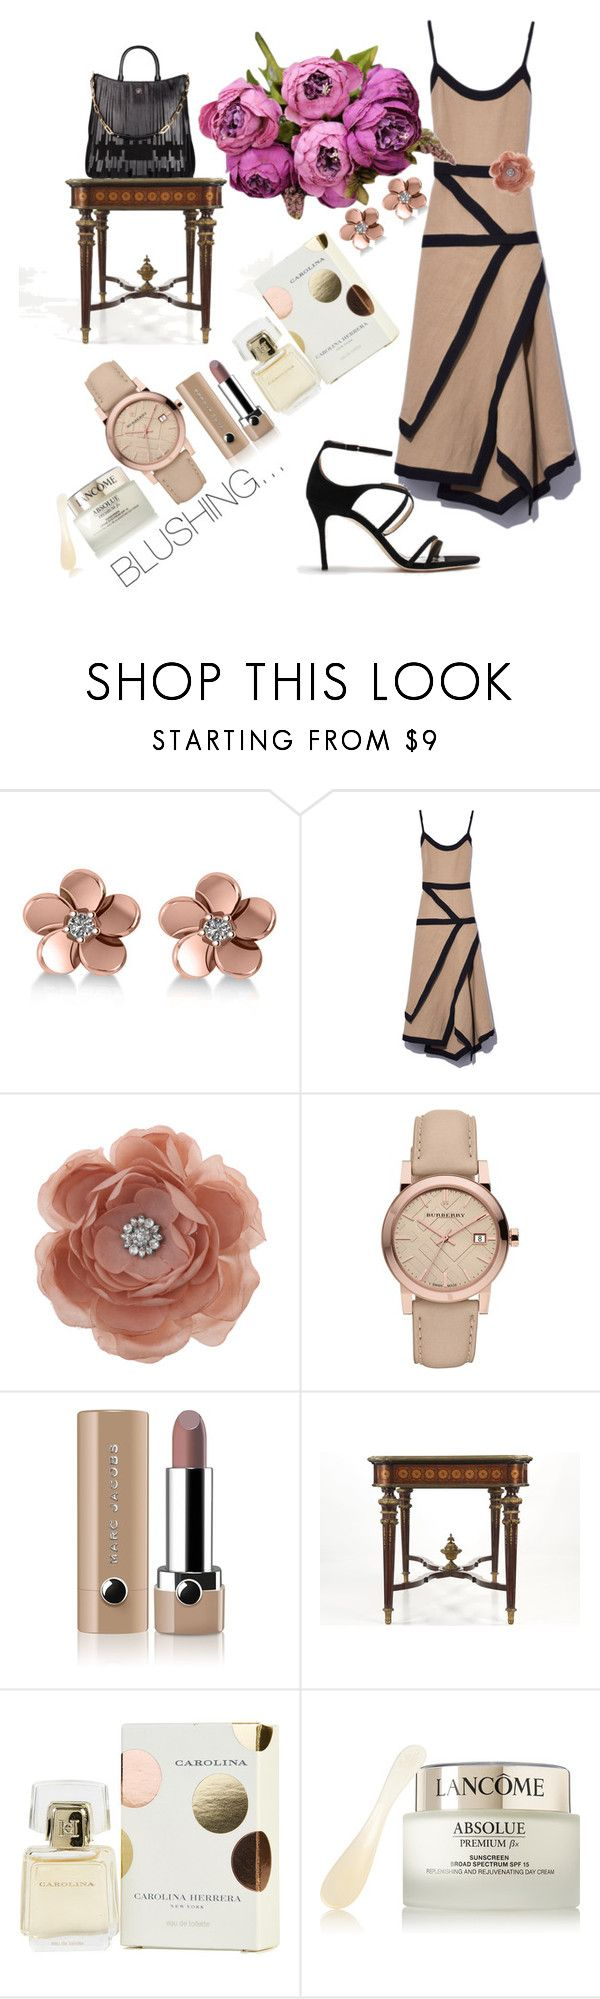 """BLUSHING"" by tinagarrison ❤ liked on Polyvore featuring Allurez, J.W. Anderson, Miss Selfridge, Burberry, Marc Jacobs, CH Carolina Herrera, Carolina Herrera and Lancôme"